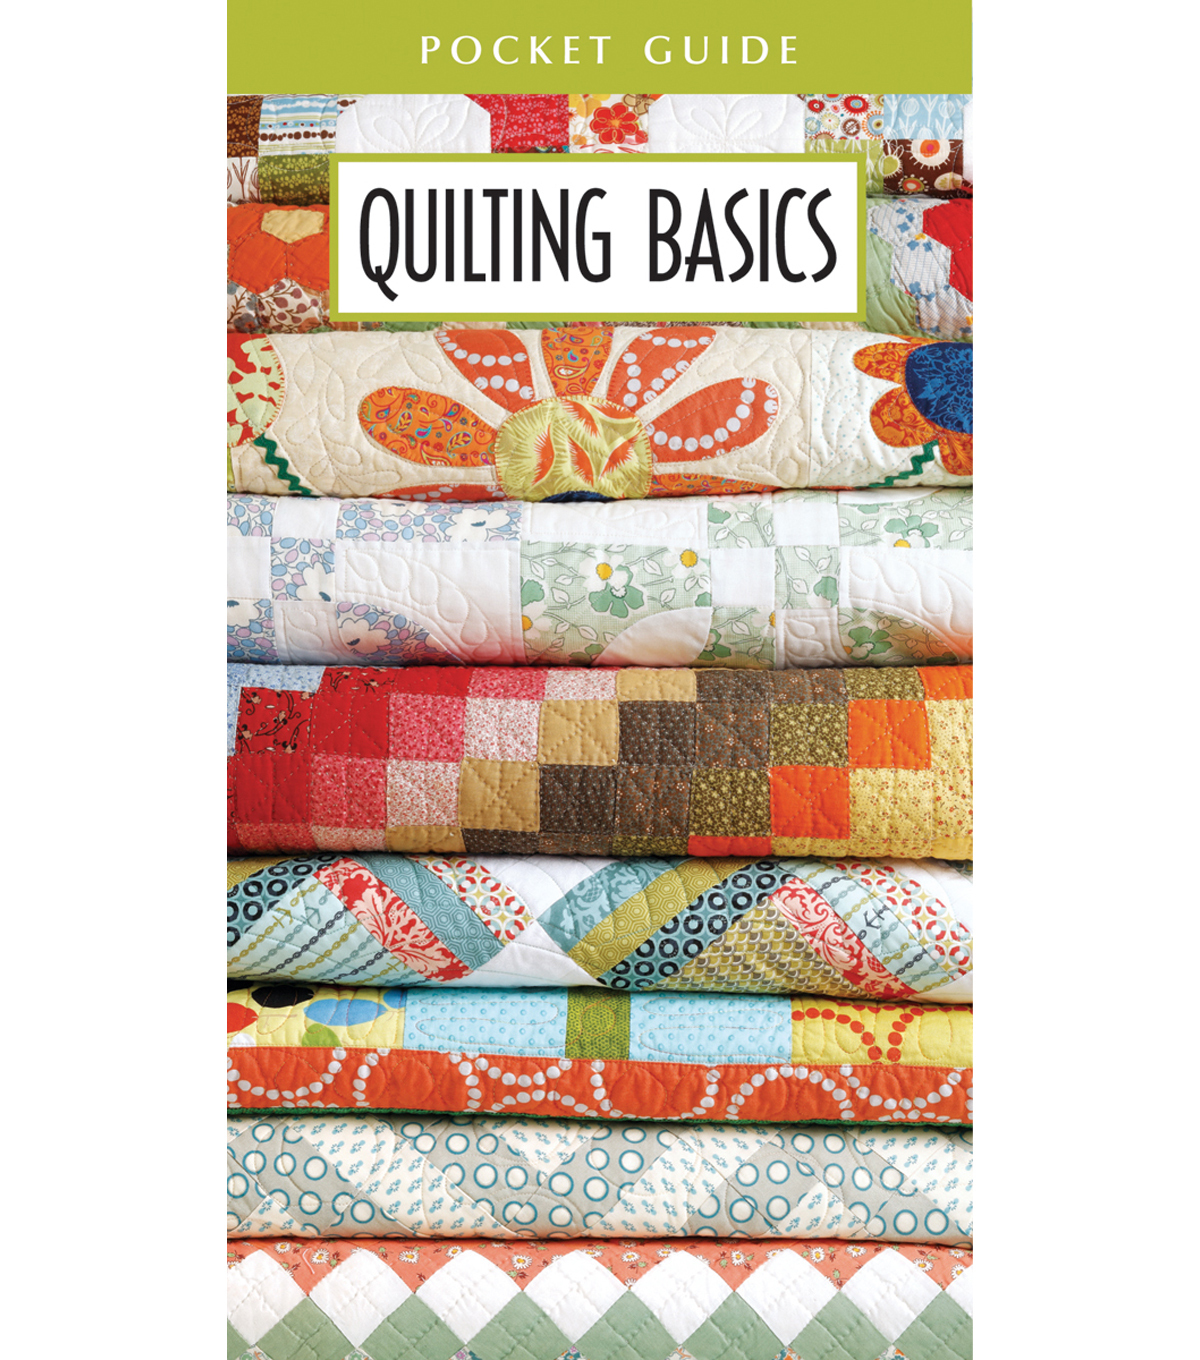 Leisure Arts-Quilting Basics Pocket Guide